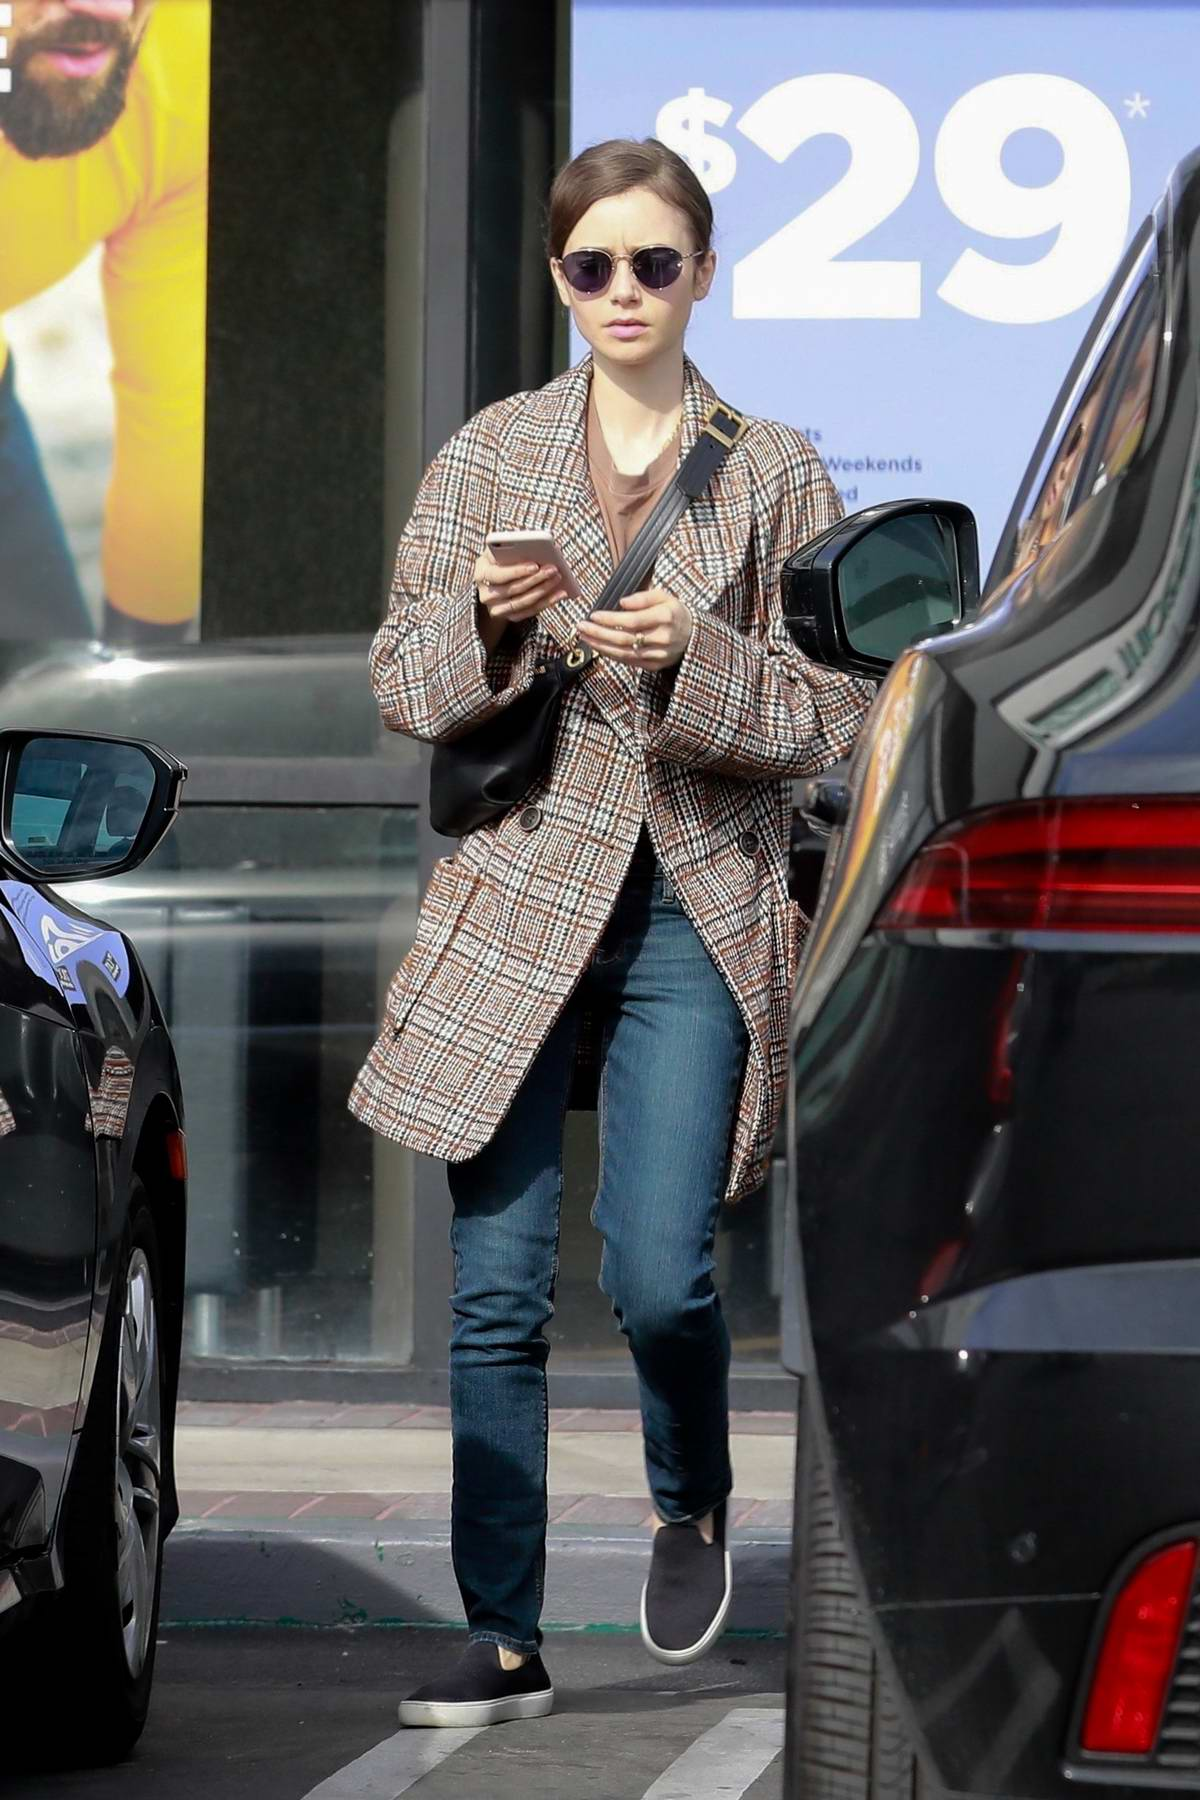 Lily Collins spotted in a tweed coat as she leaves after a massage therapy in Hollywood, California